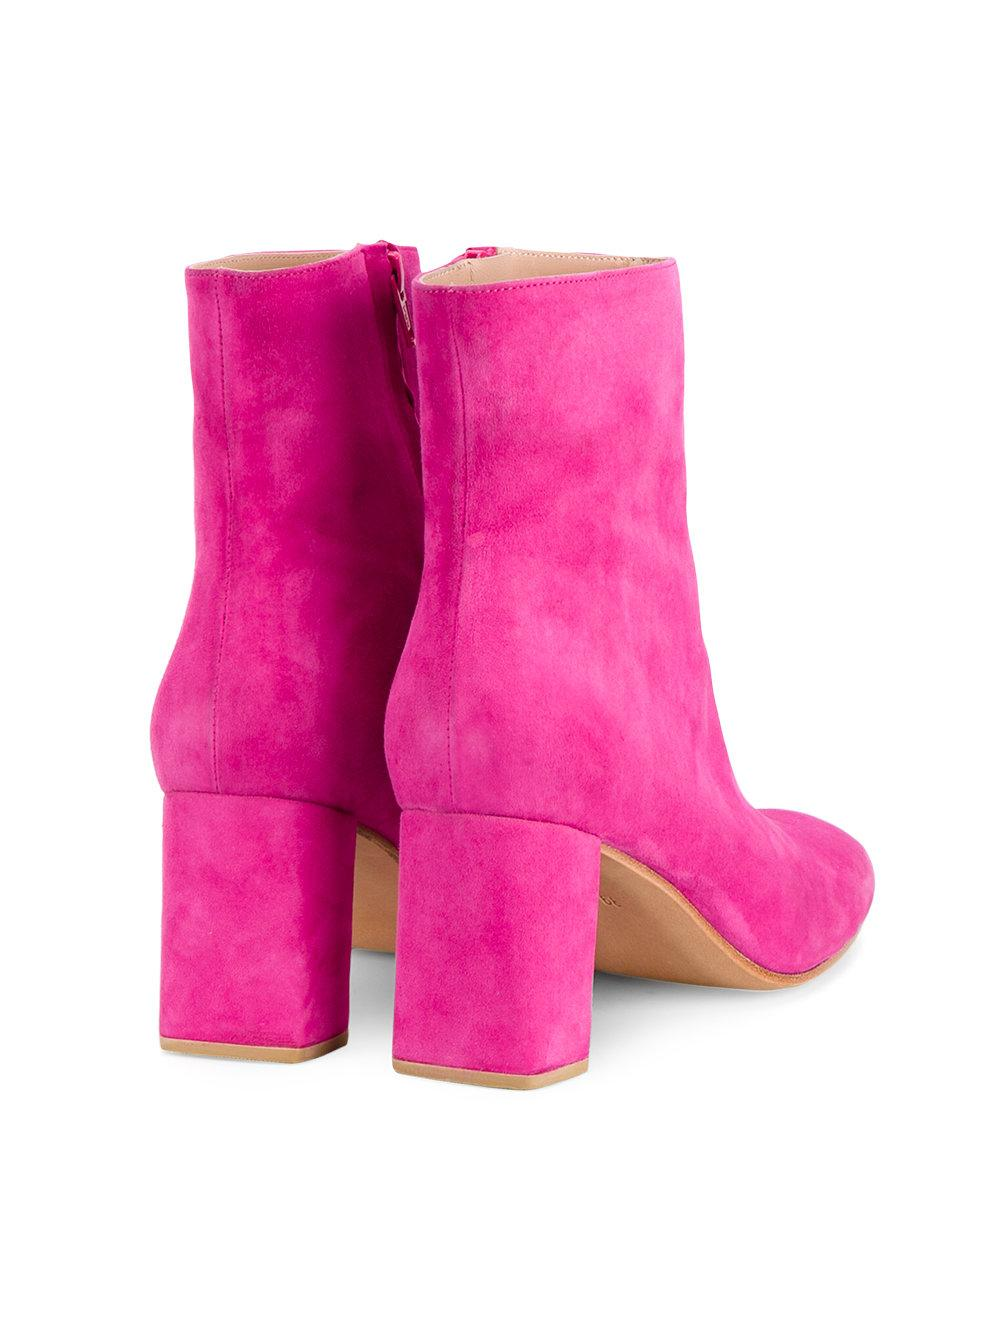 Maryam Nassir Zadeh Suede Ankle Boots in Pink/Purple (Pink)